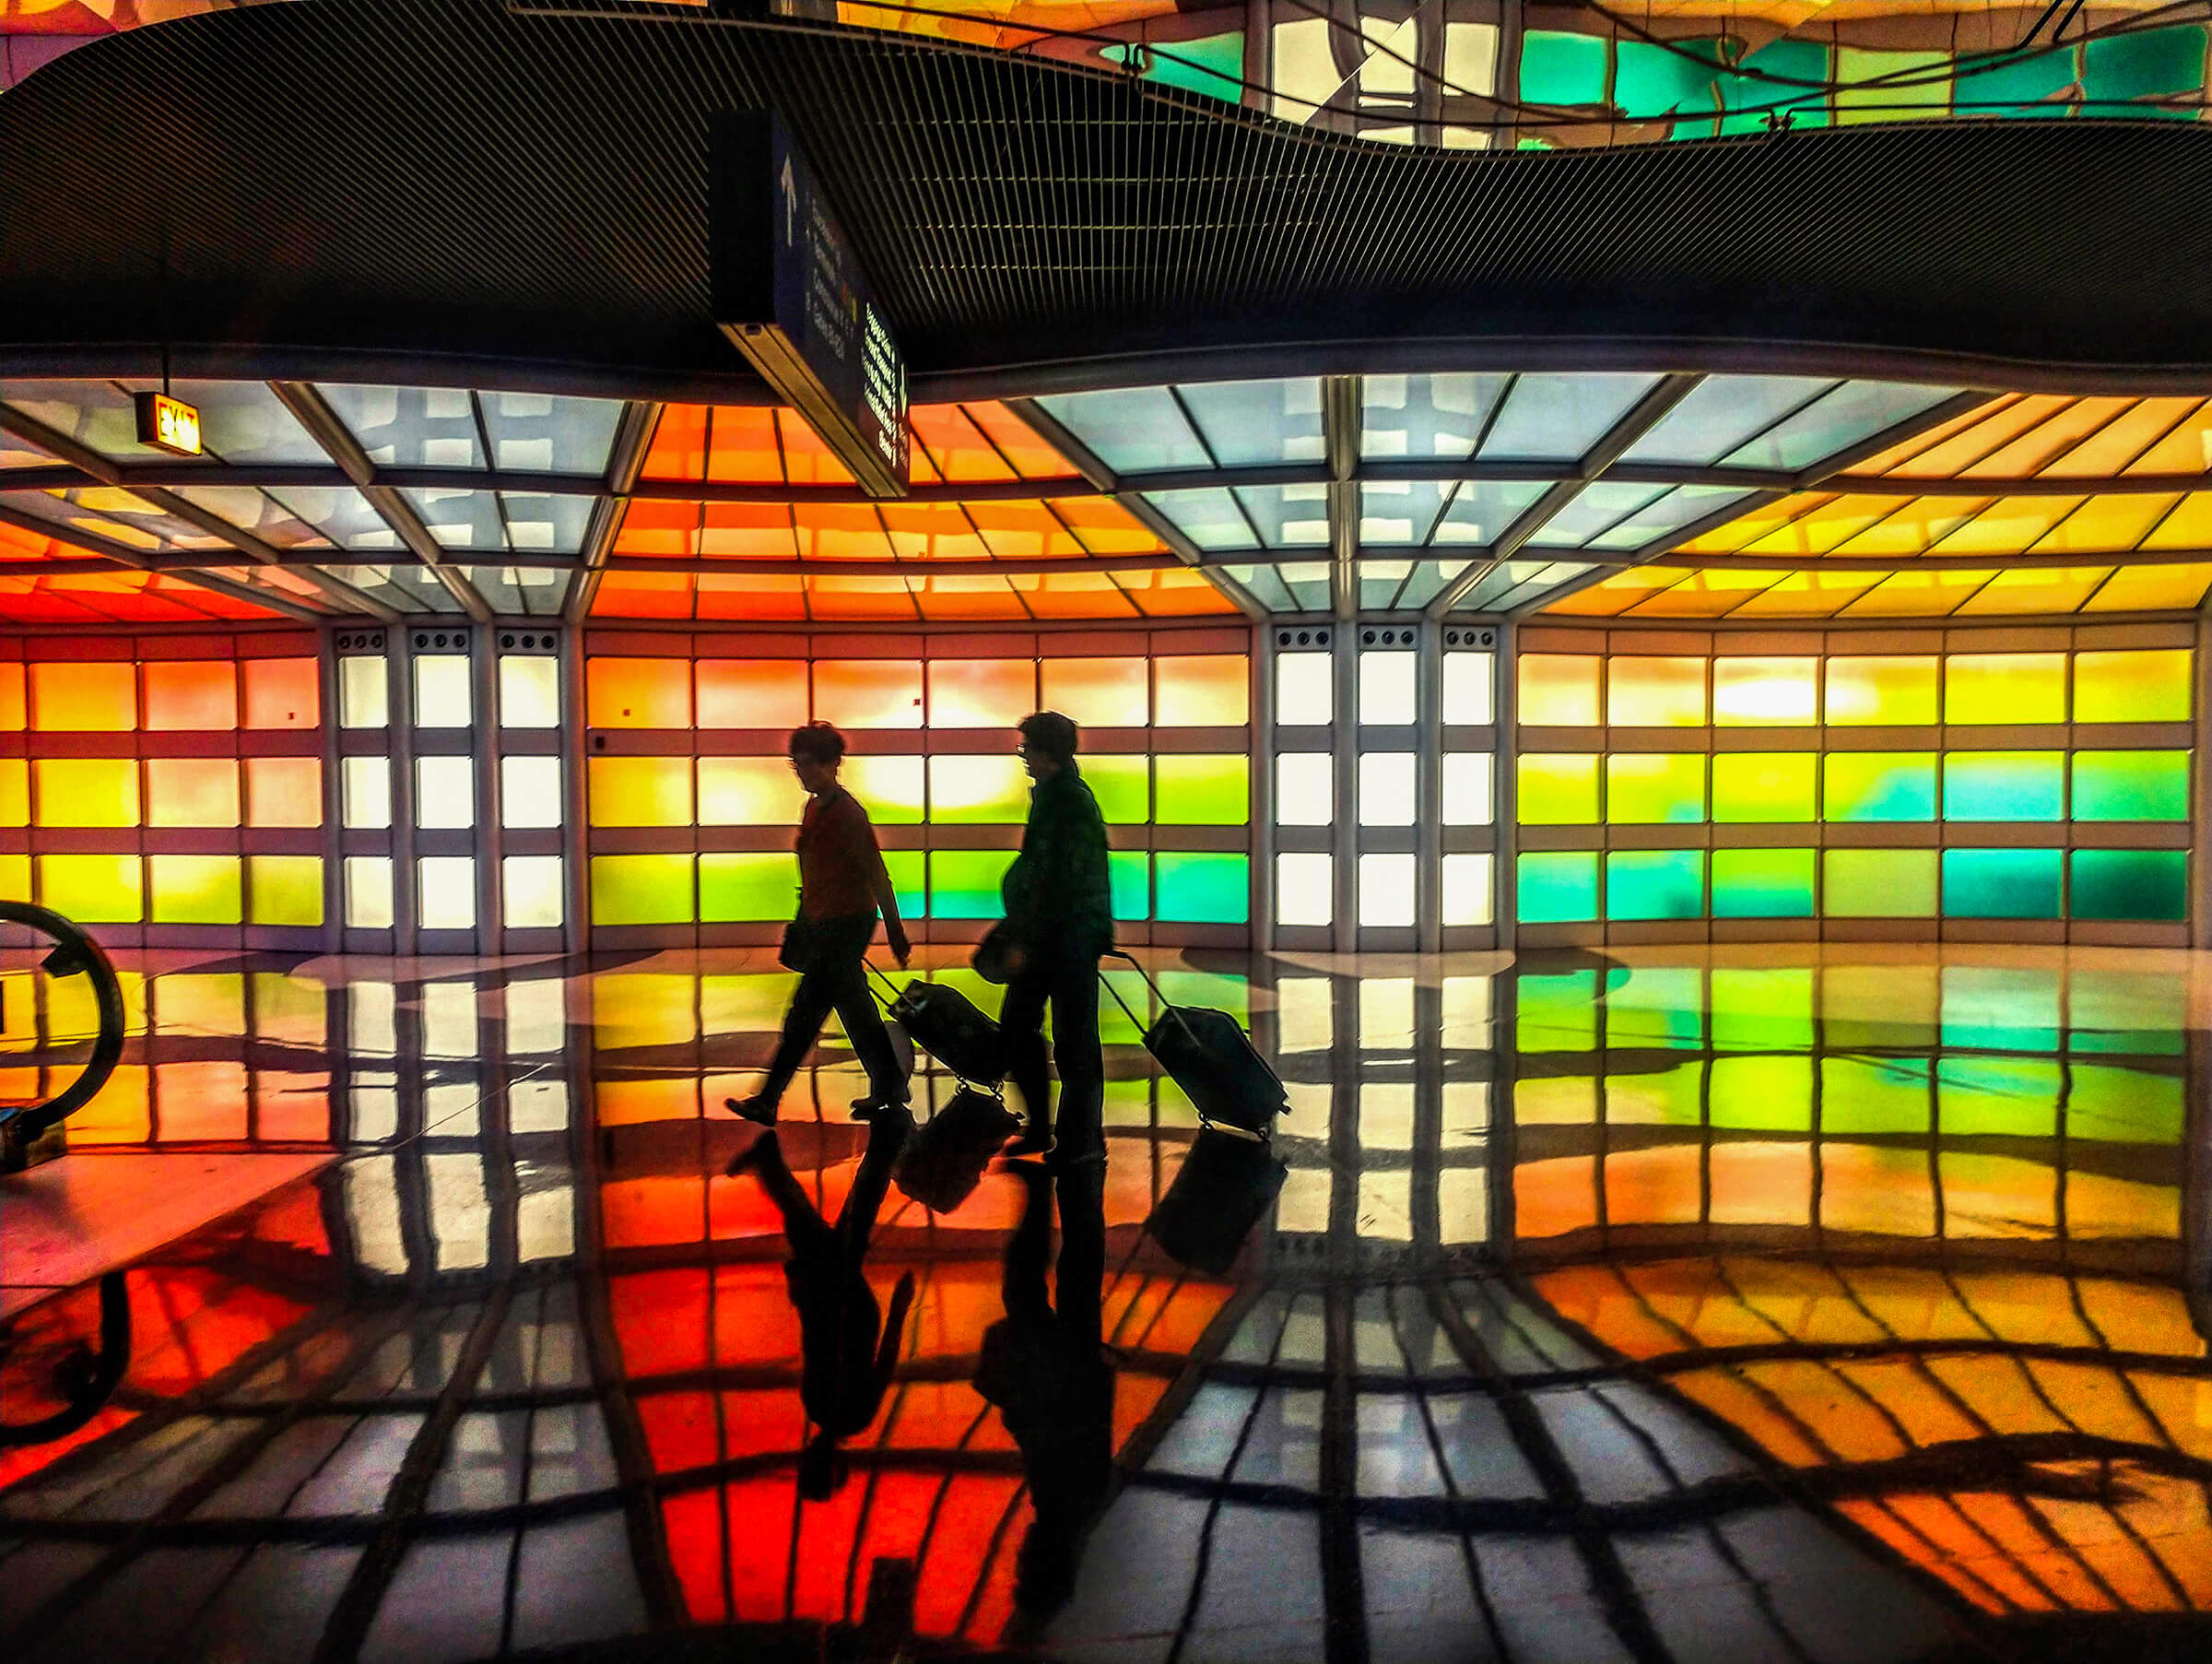 Architectural Photography Chicago O'Hare Airport, people walk through a colorful terminal